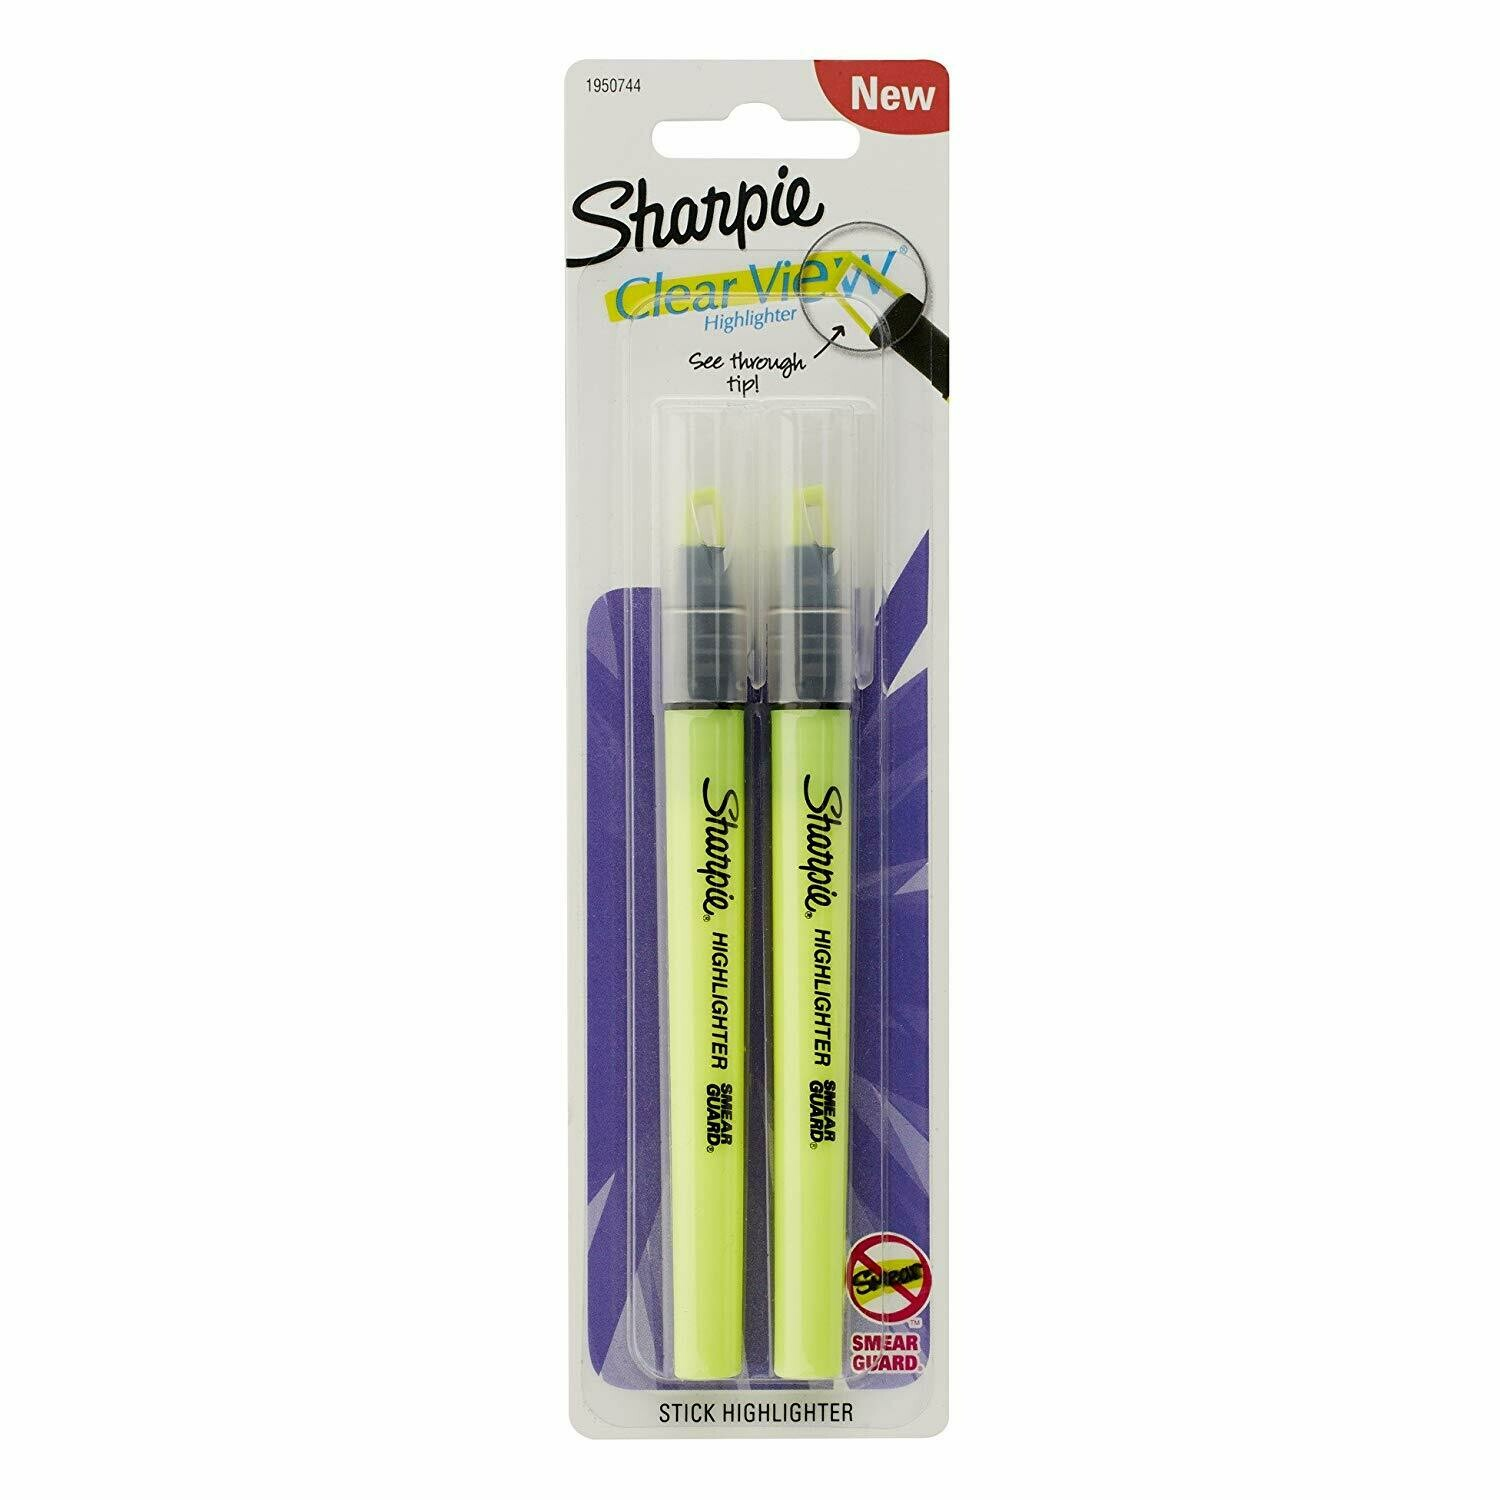 Sharpie / Clear View Highlighter Stick, Yellow, 2/Pack